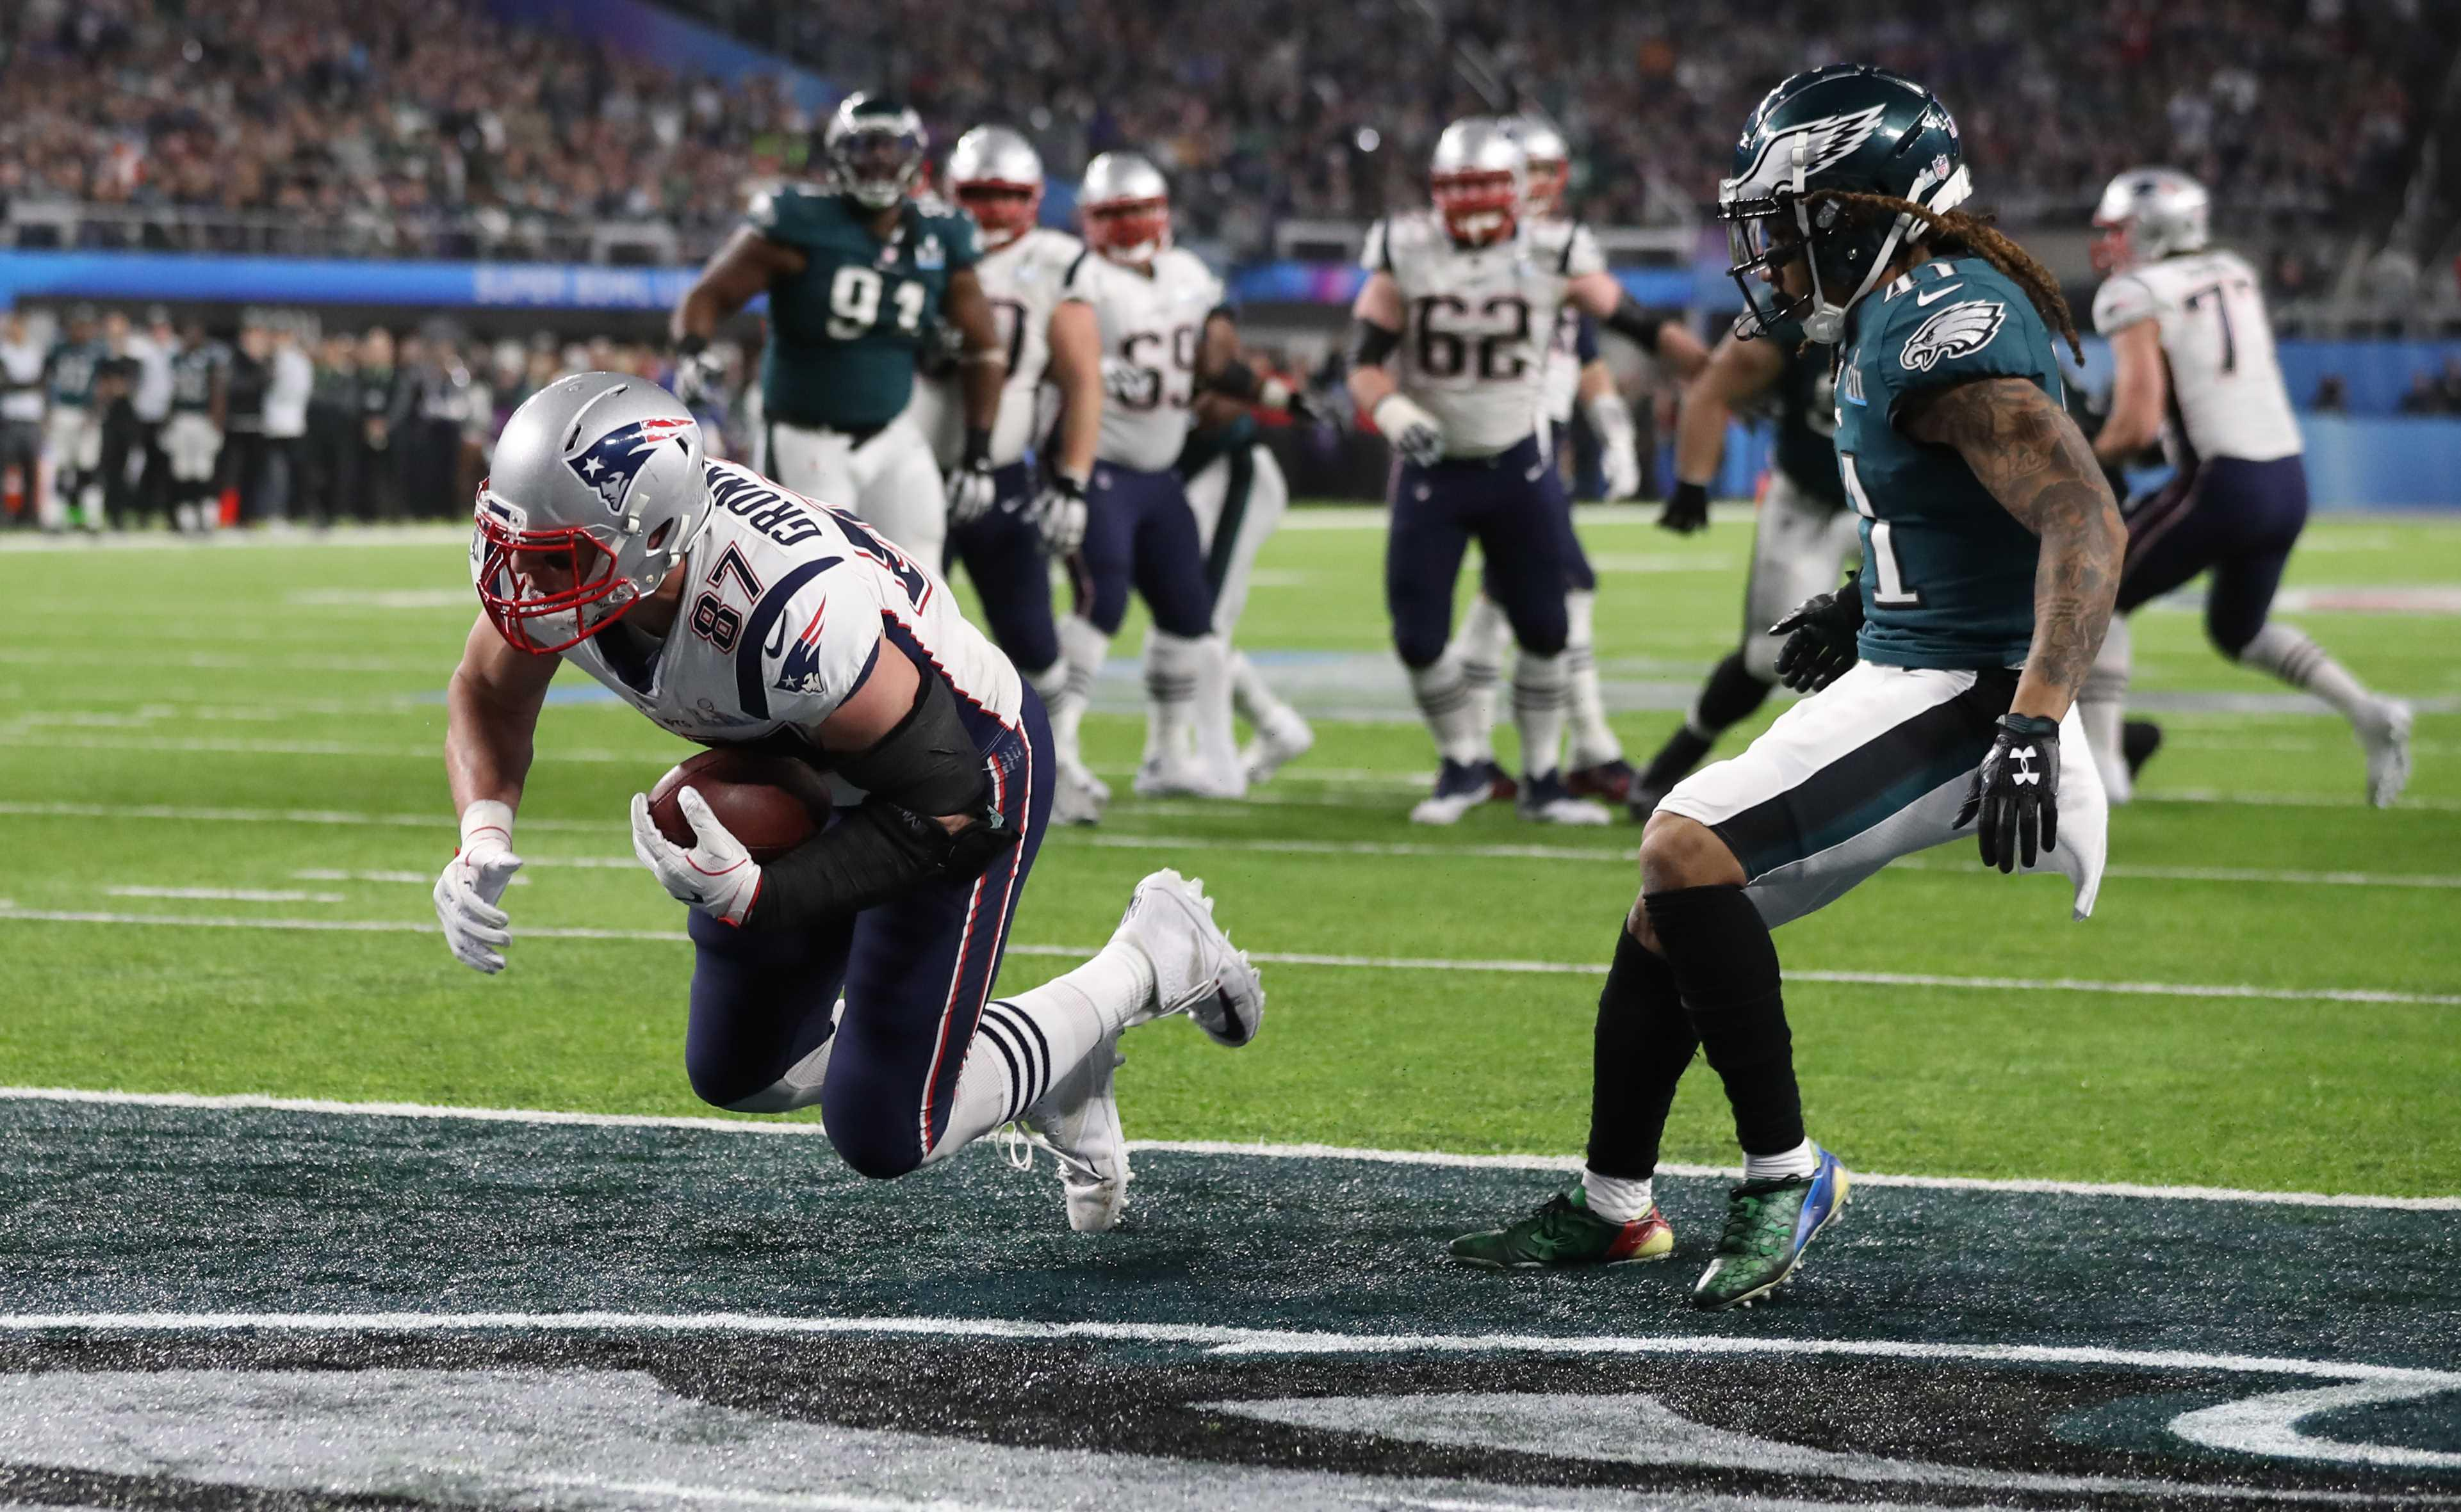 Rob Gronkowski scores a touchdown early in the third quarter for New England